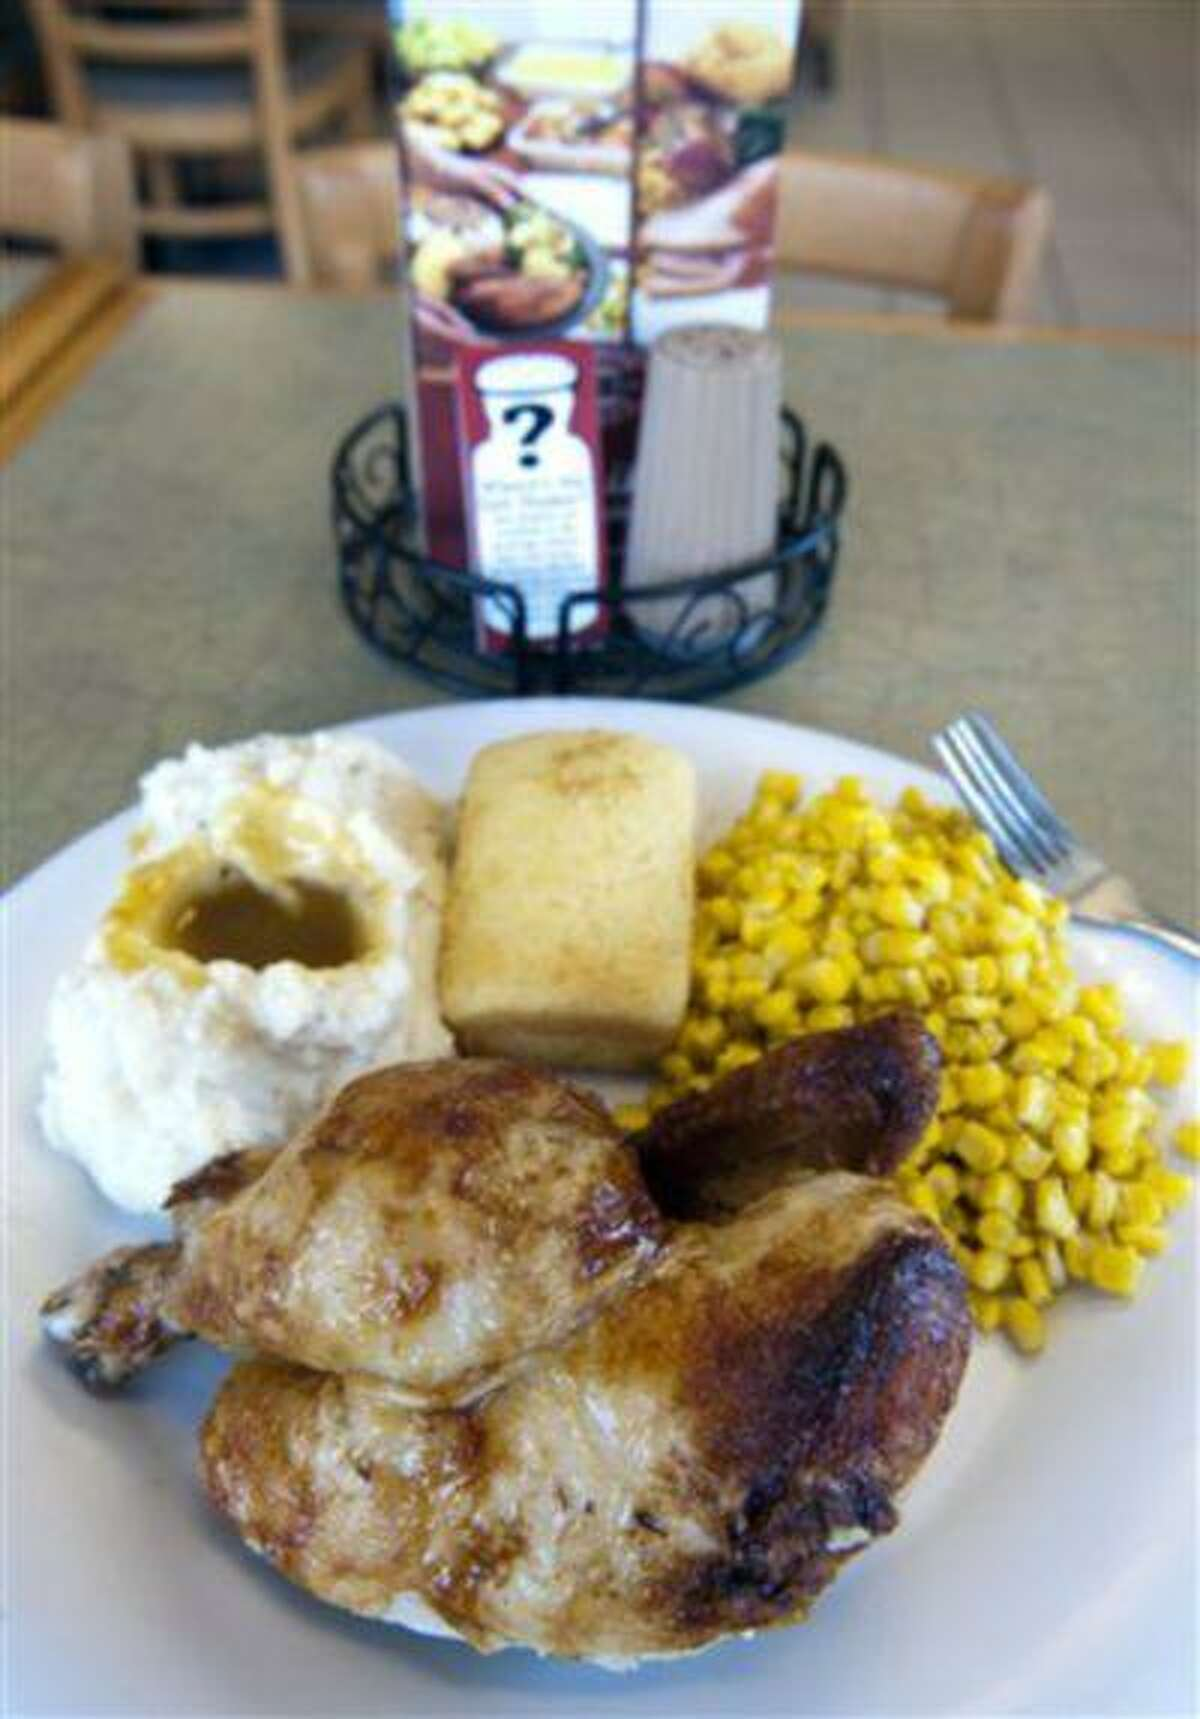 A half-chicken lunch sits on a table of the Alexandria, Va., Boston Market restaurant Tuesday, May 14, 2013. Boston Market has removed salt shakers from the table and placed them with other condiments on the beverage dispenser table. A surprising new report questions how sharply Americans should cut back on salt. Make no mistake: Most Americans eat way too much, not just from salt shakers but because of sodium in processed foods. The Institute of Medicine said Tuesday there's no evidence that cutting well below established guidelines offers any benefit -- even though that's recommended for certain people at high risk of heart disease. There are some suggestions that going way too low might harm certain patients.